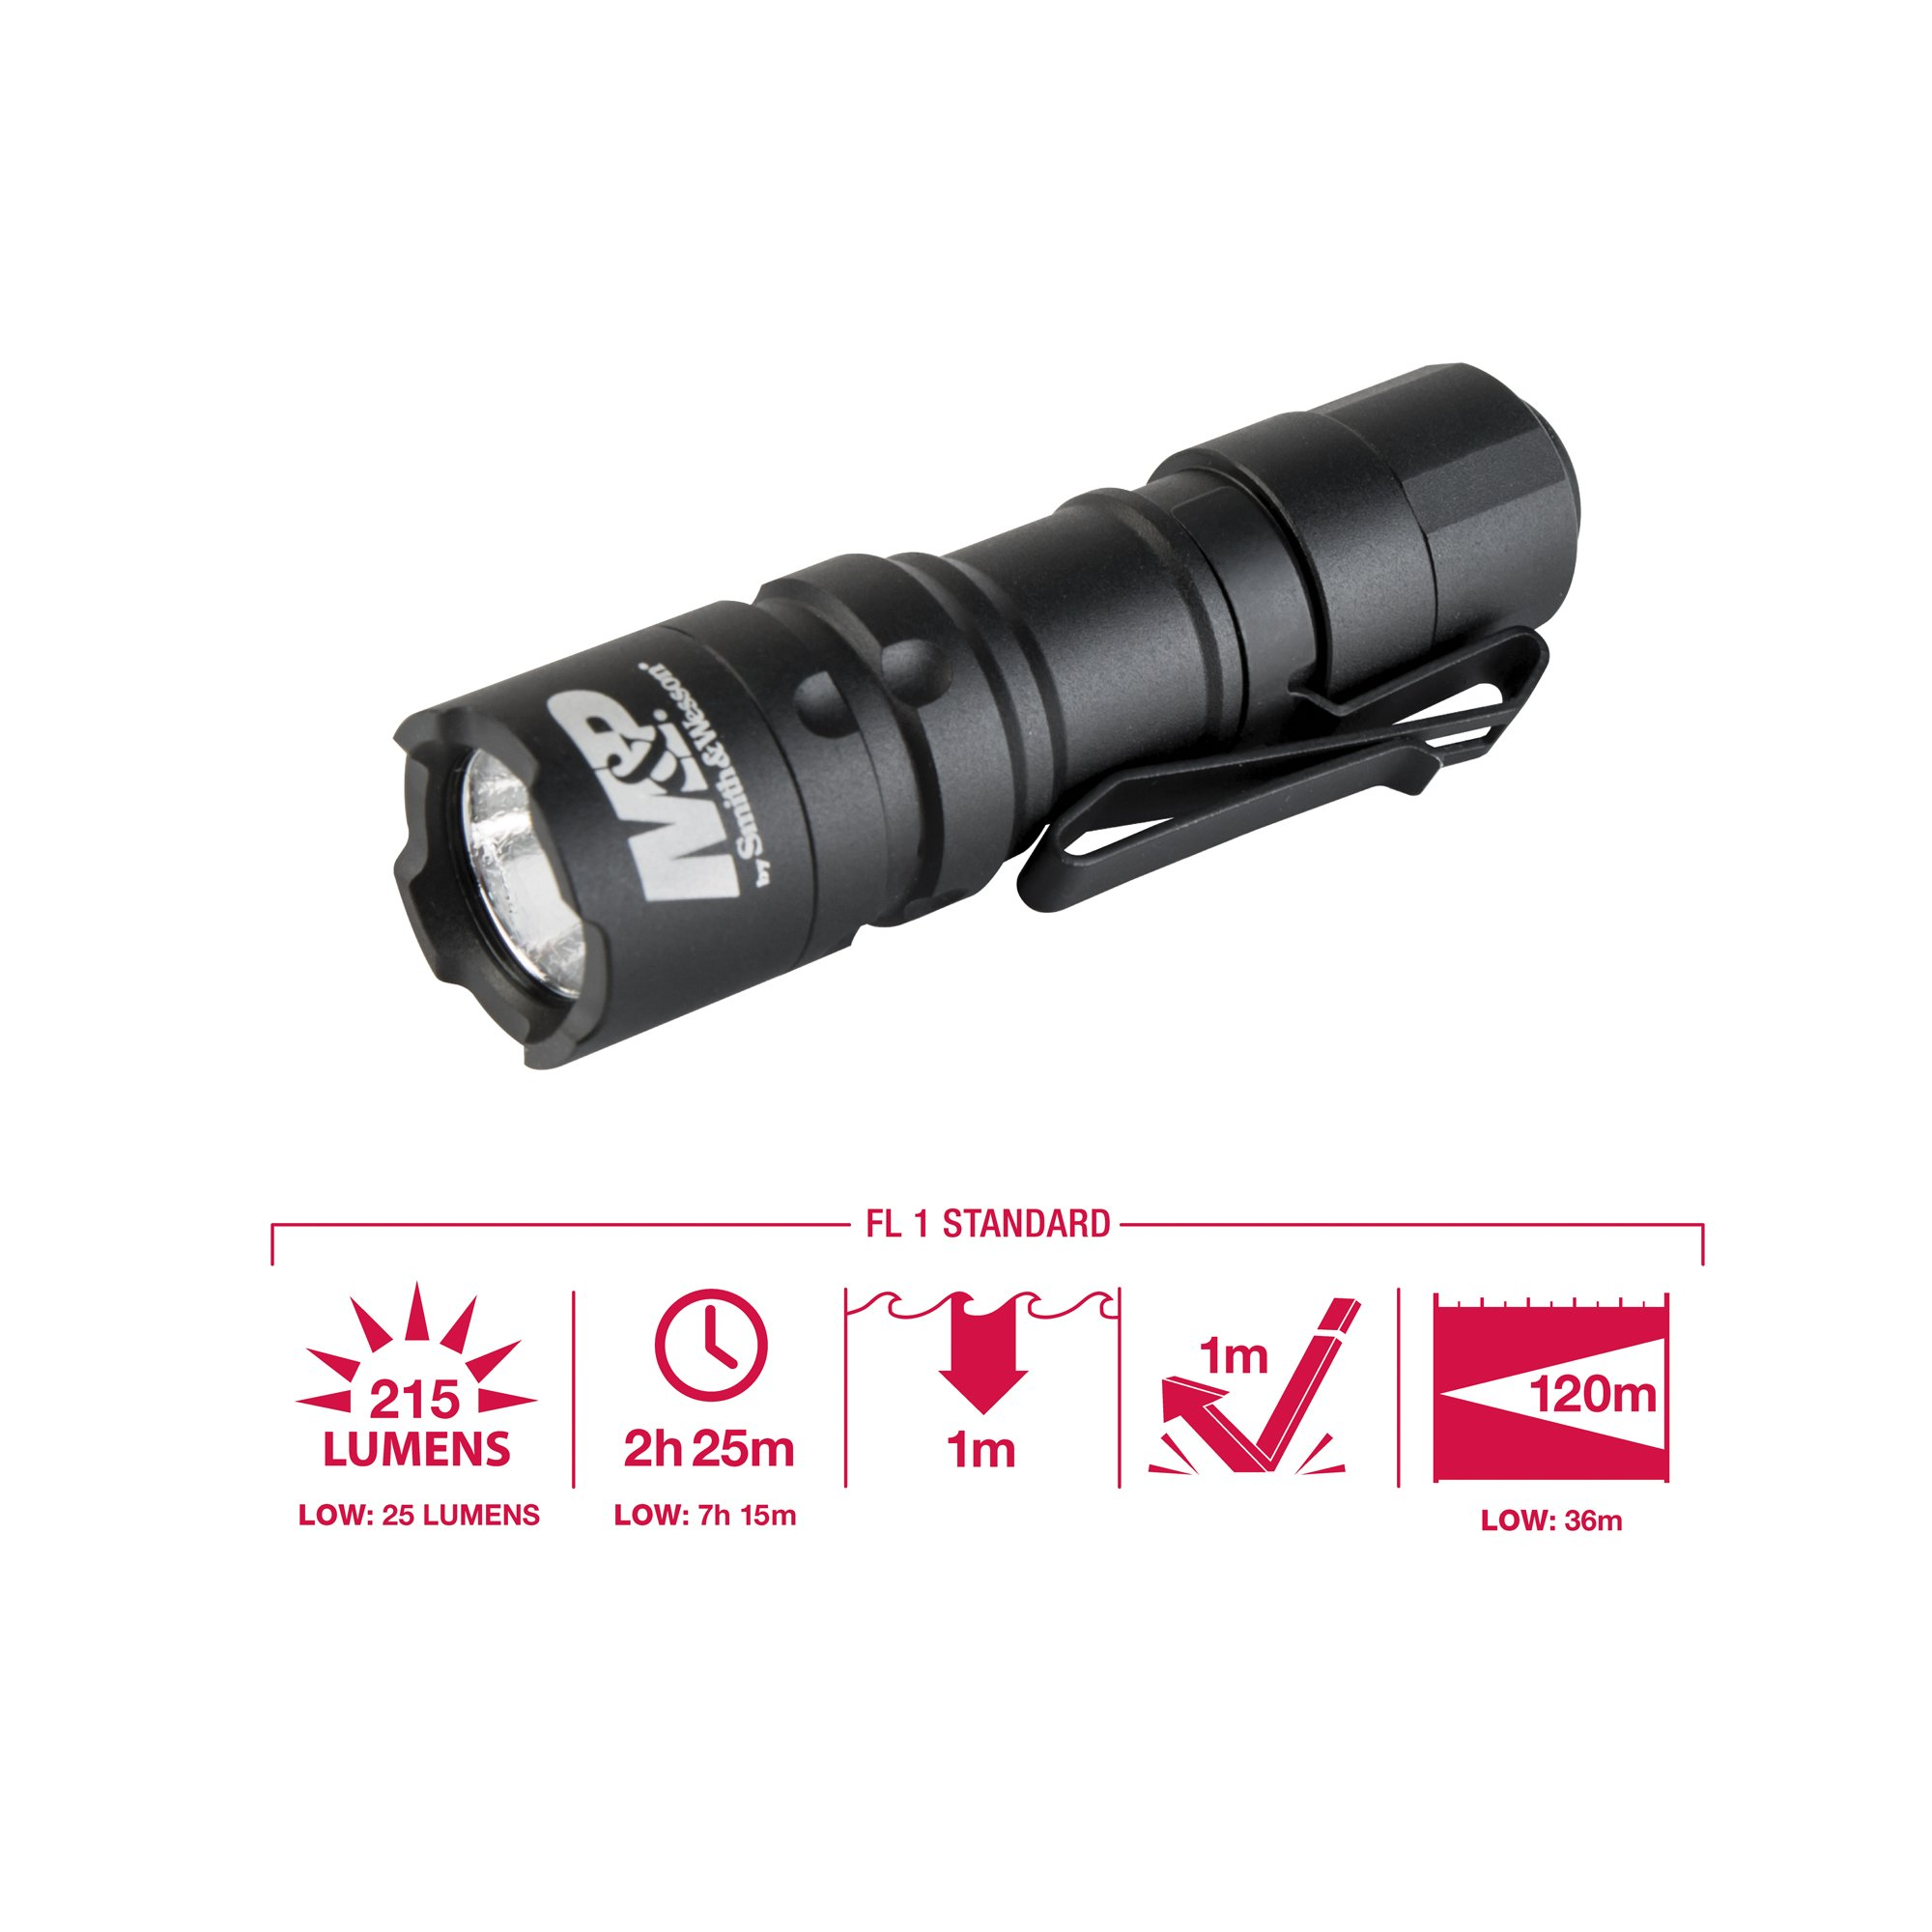 M&P by Smith & Wesson Delta Force CS-20 CREE Flashlight 215 Lumens 3 Mode Waterproof Memory Retention Tactical Hunting Camping Hiking Fishing Self-Defense Pocket-Sized by Smith & Wesson (Image #3)